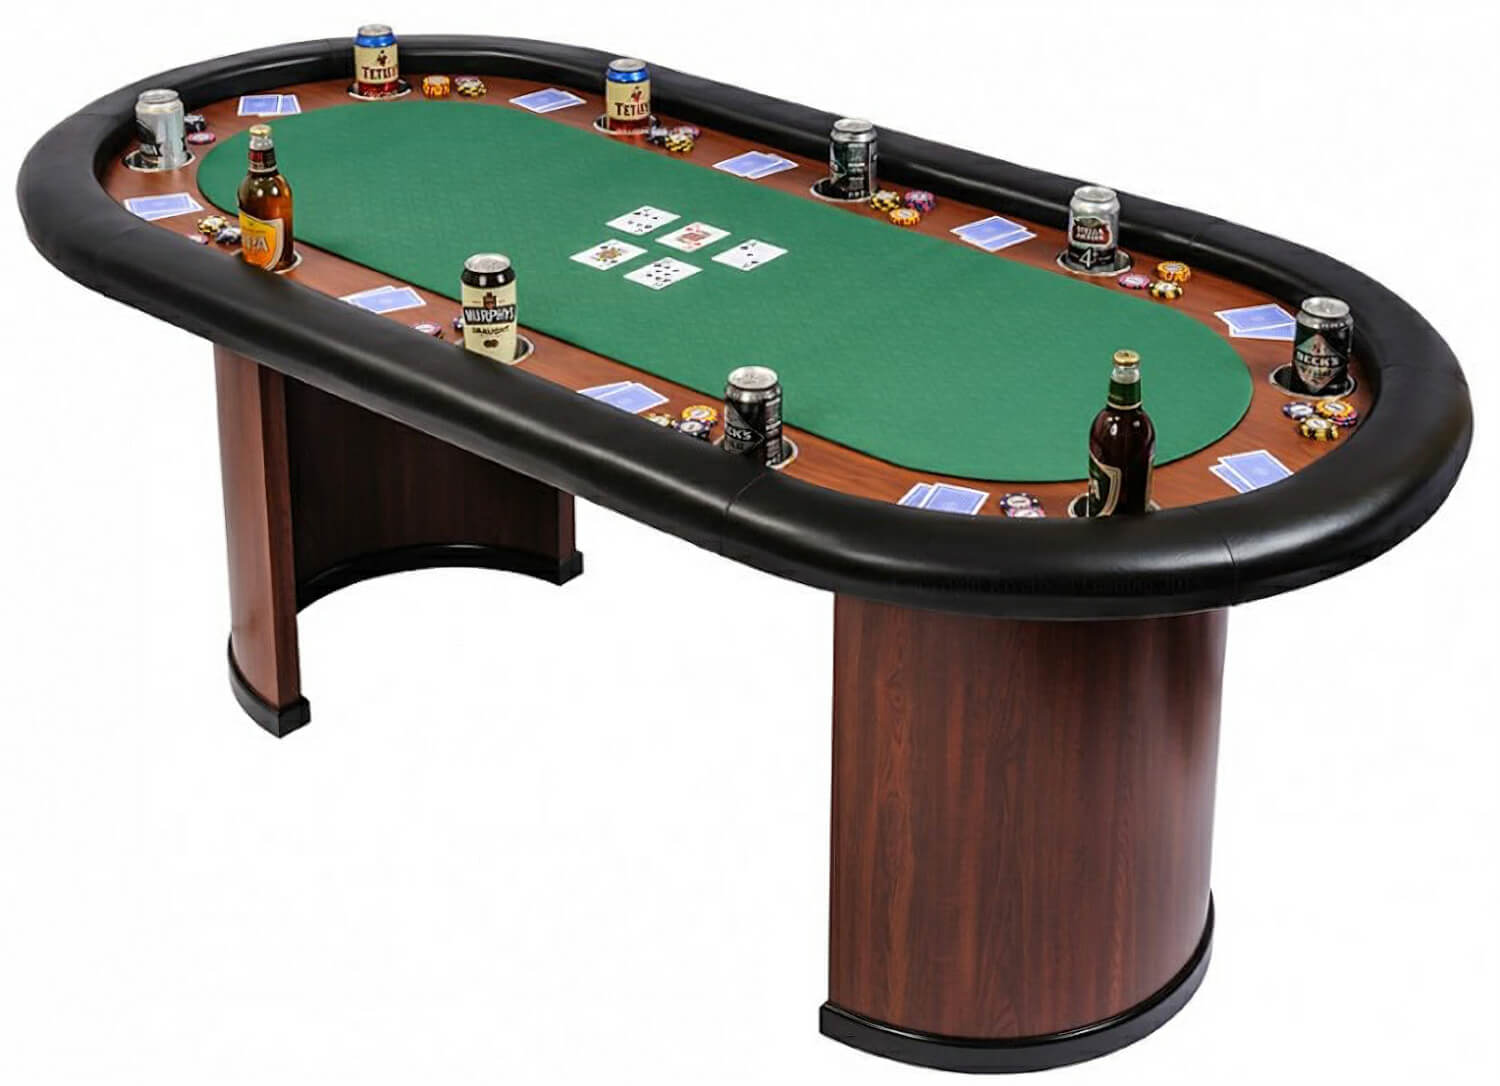 Poker bumper pool table home design ideas and pictures for 10 person poker table top